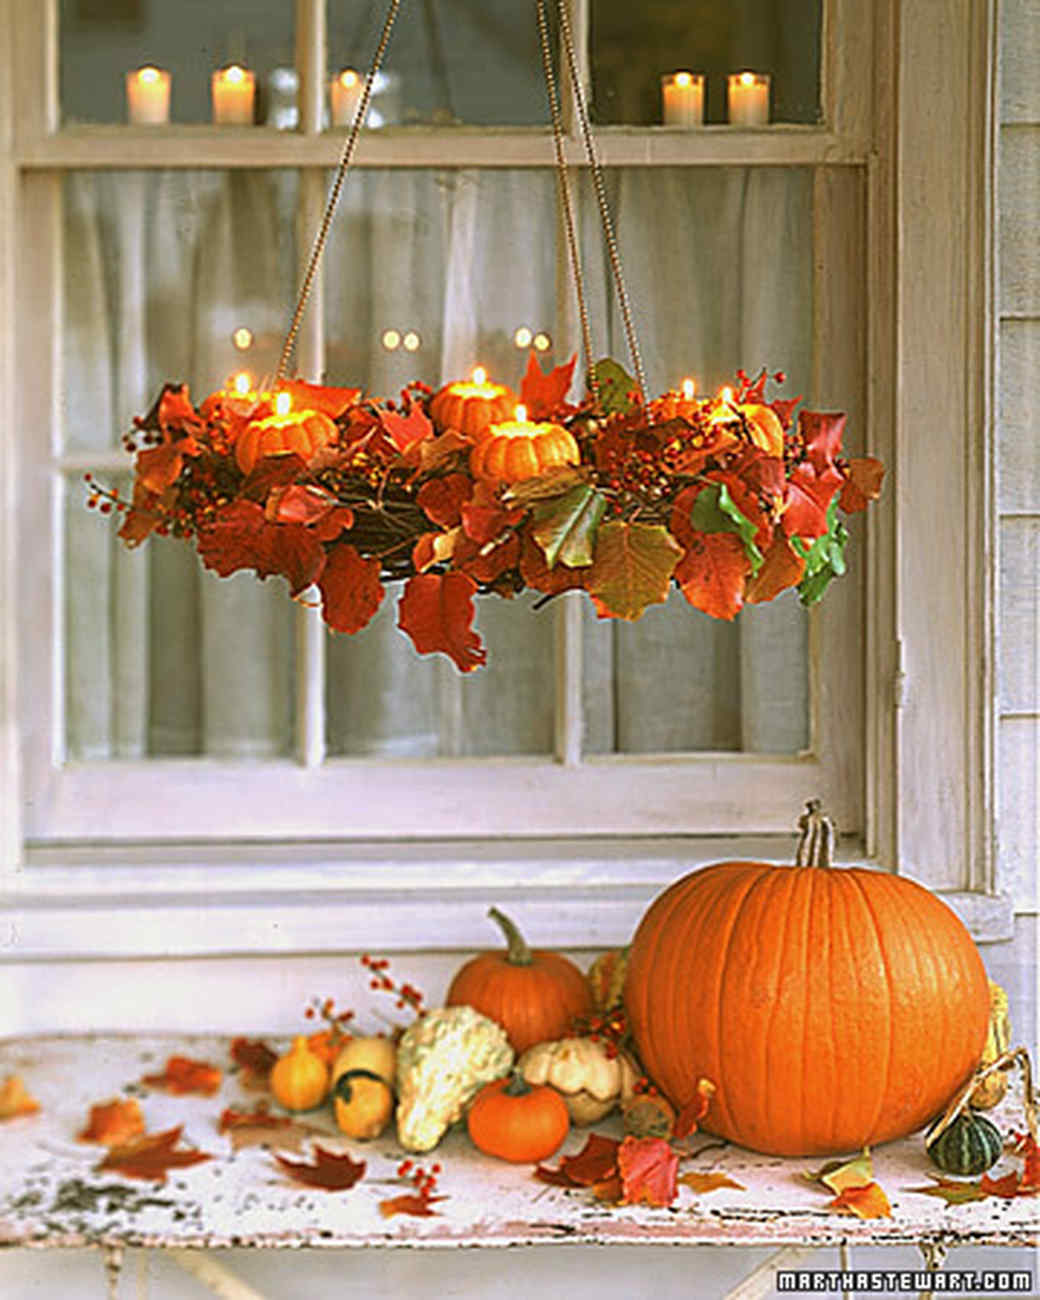 Fall Harvest Decorating | Martha Stewart